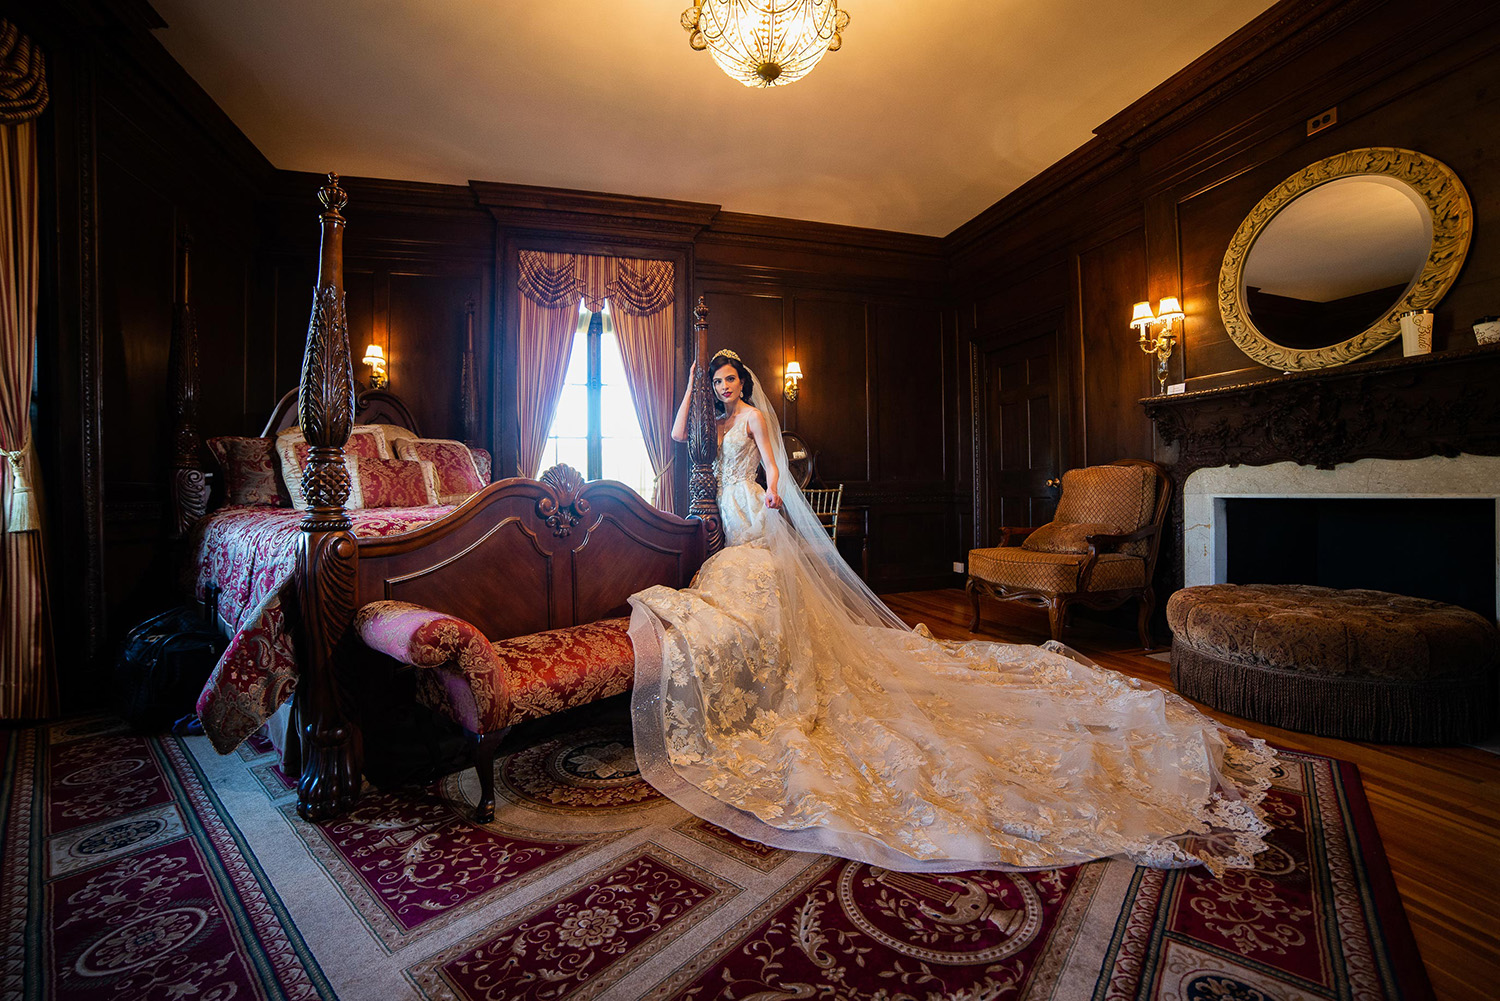 the NYIT de Seversky Mansion, in Glen Head, NY offers a beautiful bridal sweet to capture amazing photo os the bride.